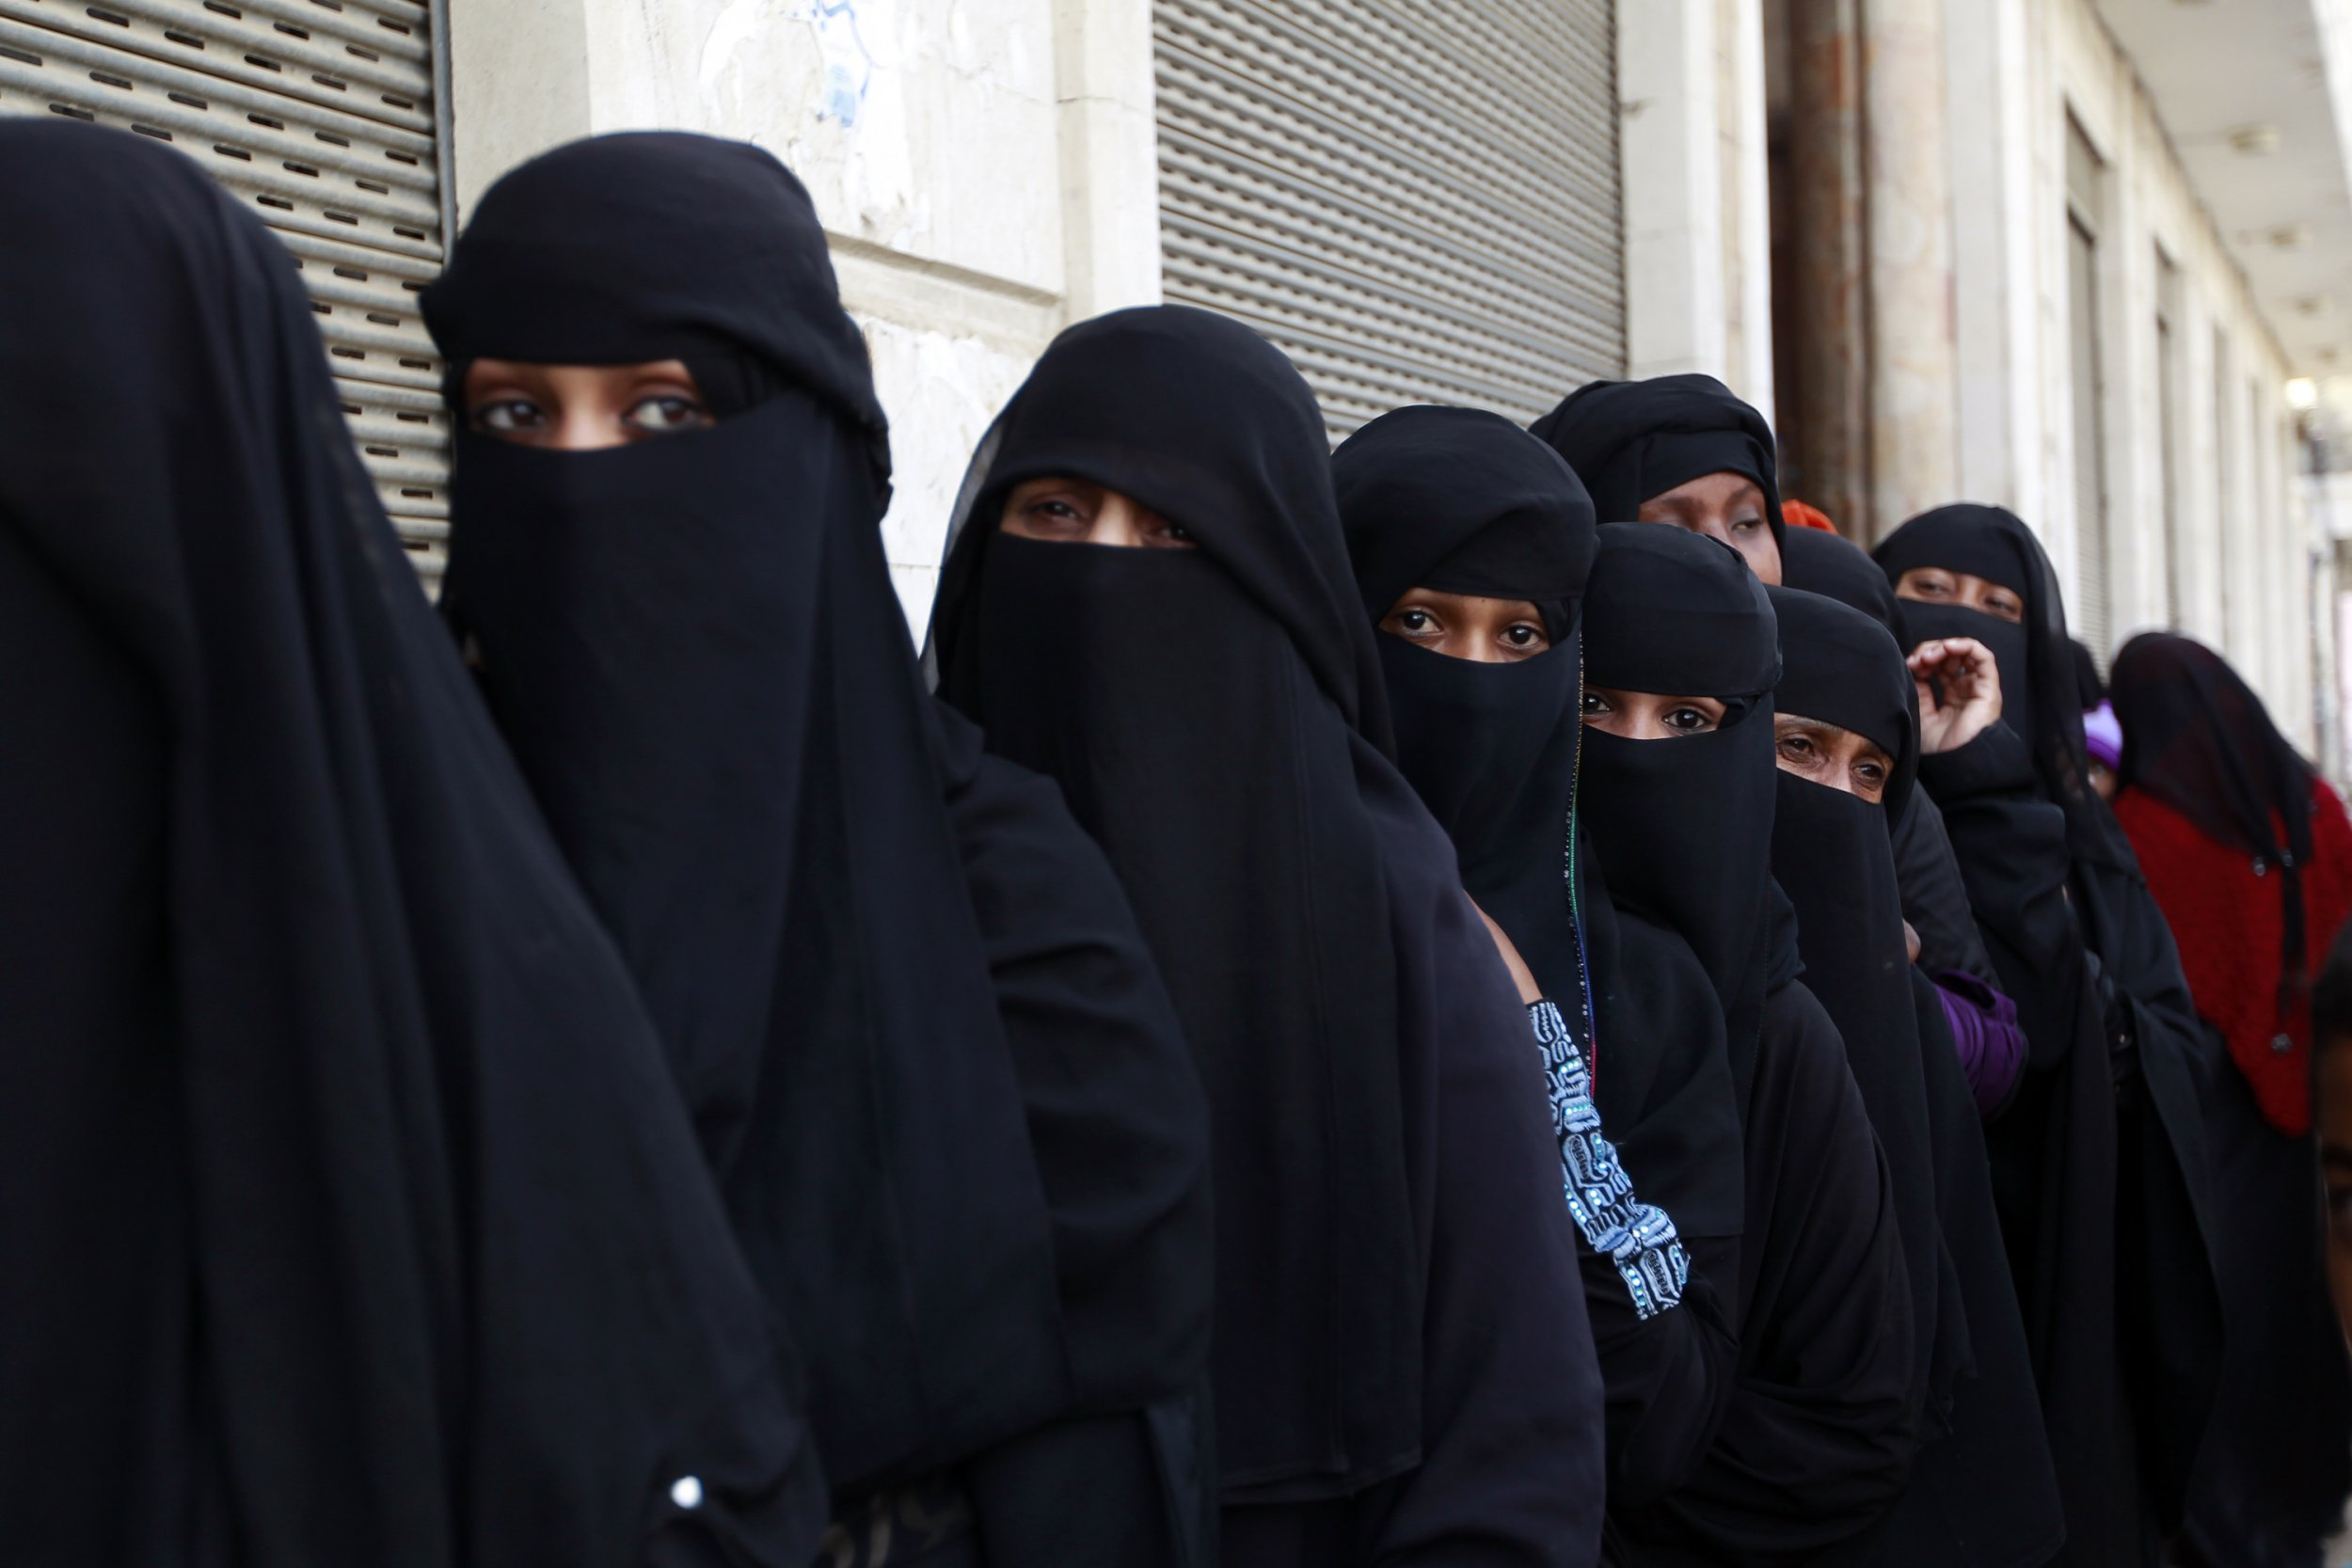 Swiss Region Imposes Burka Ban With 10 000 Franc Fine For